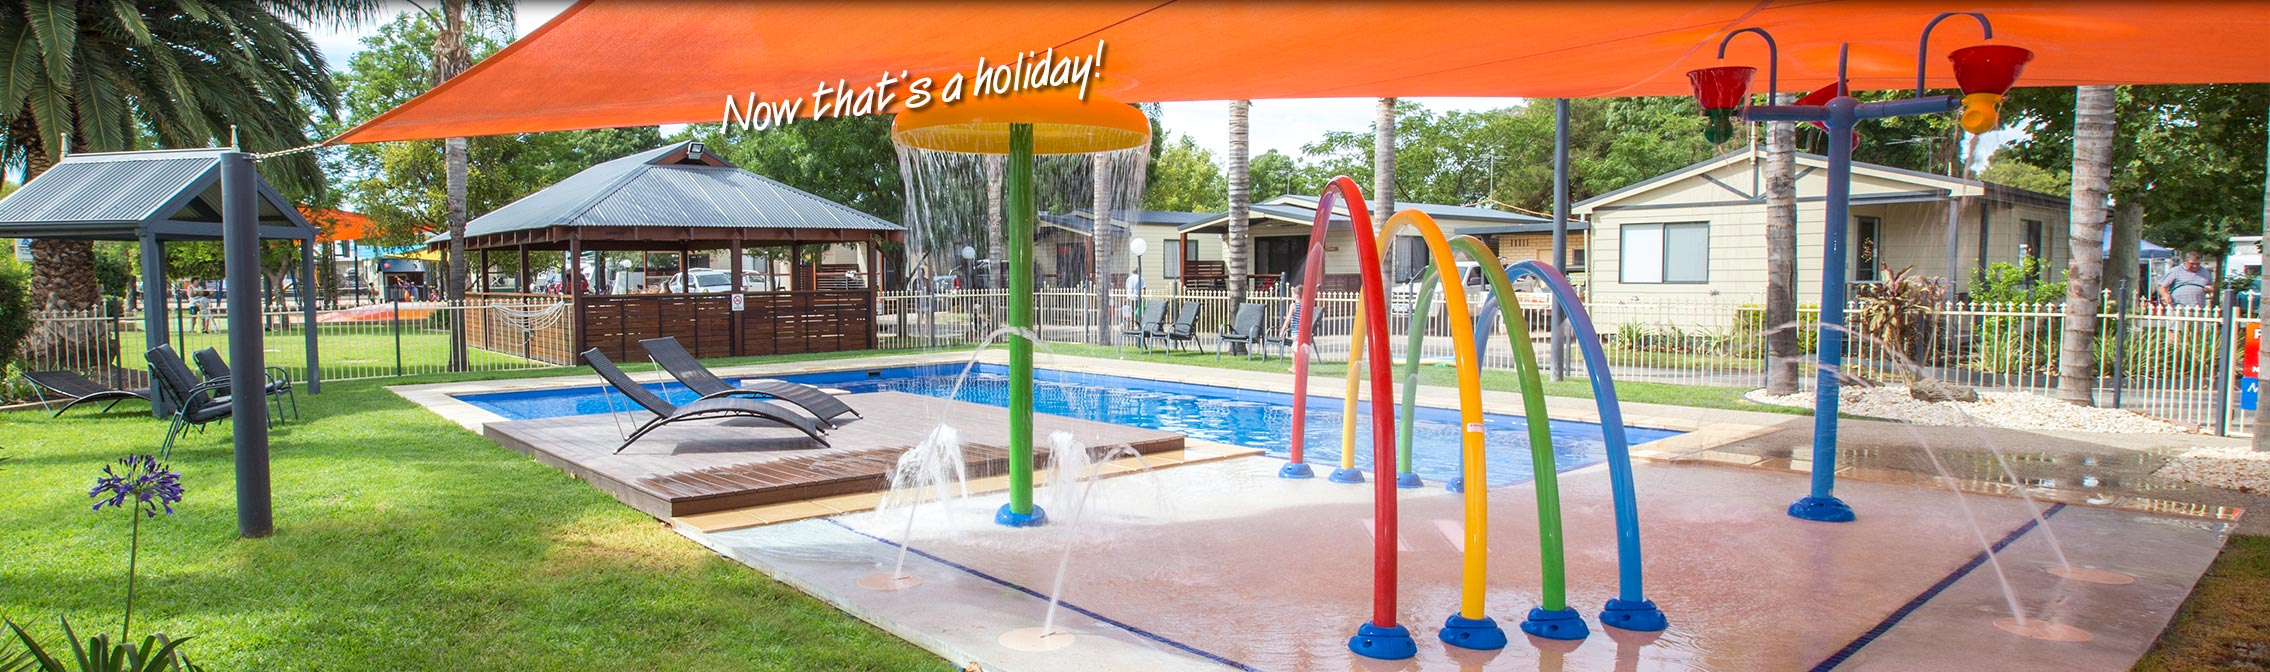 Take a swim in the resort pool at All Seasons Holiday Park Mildura